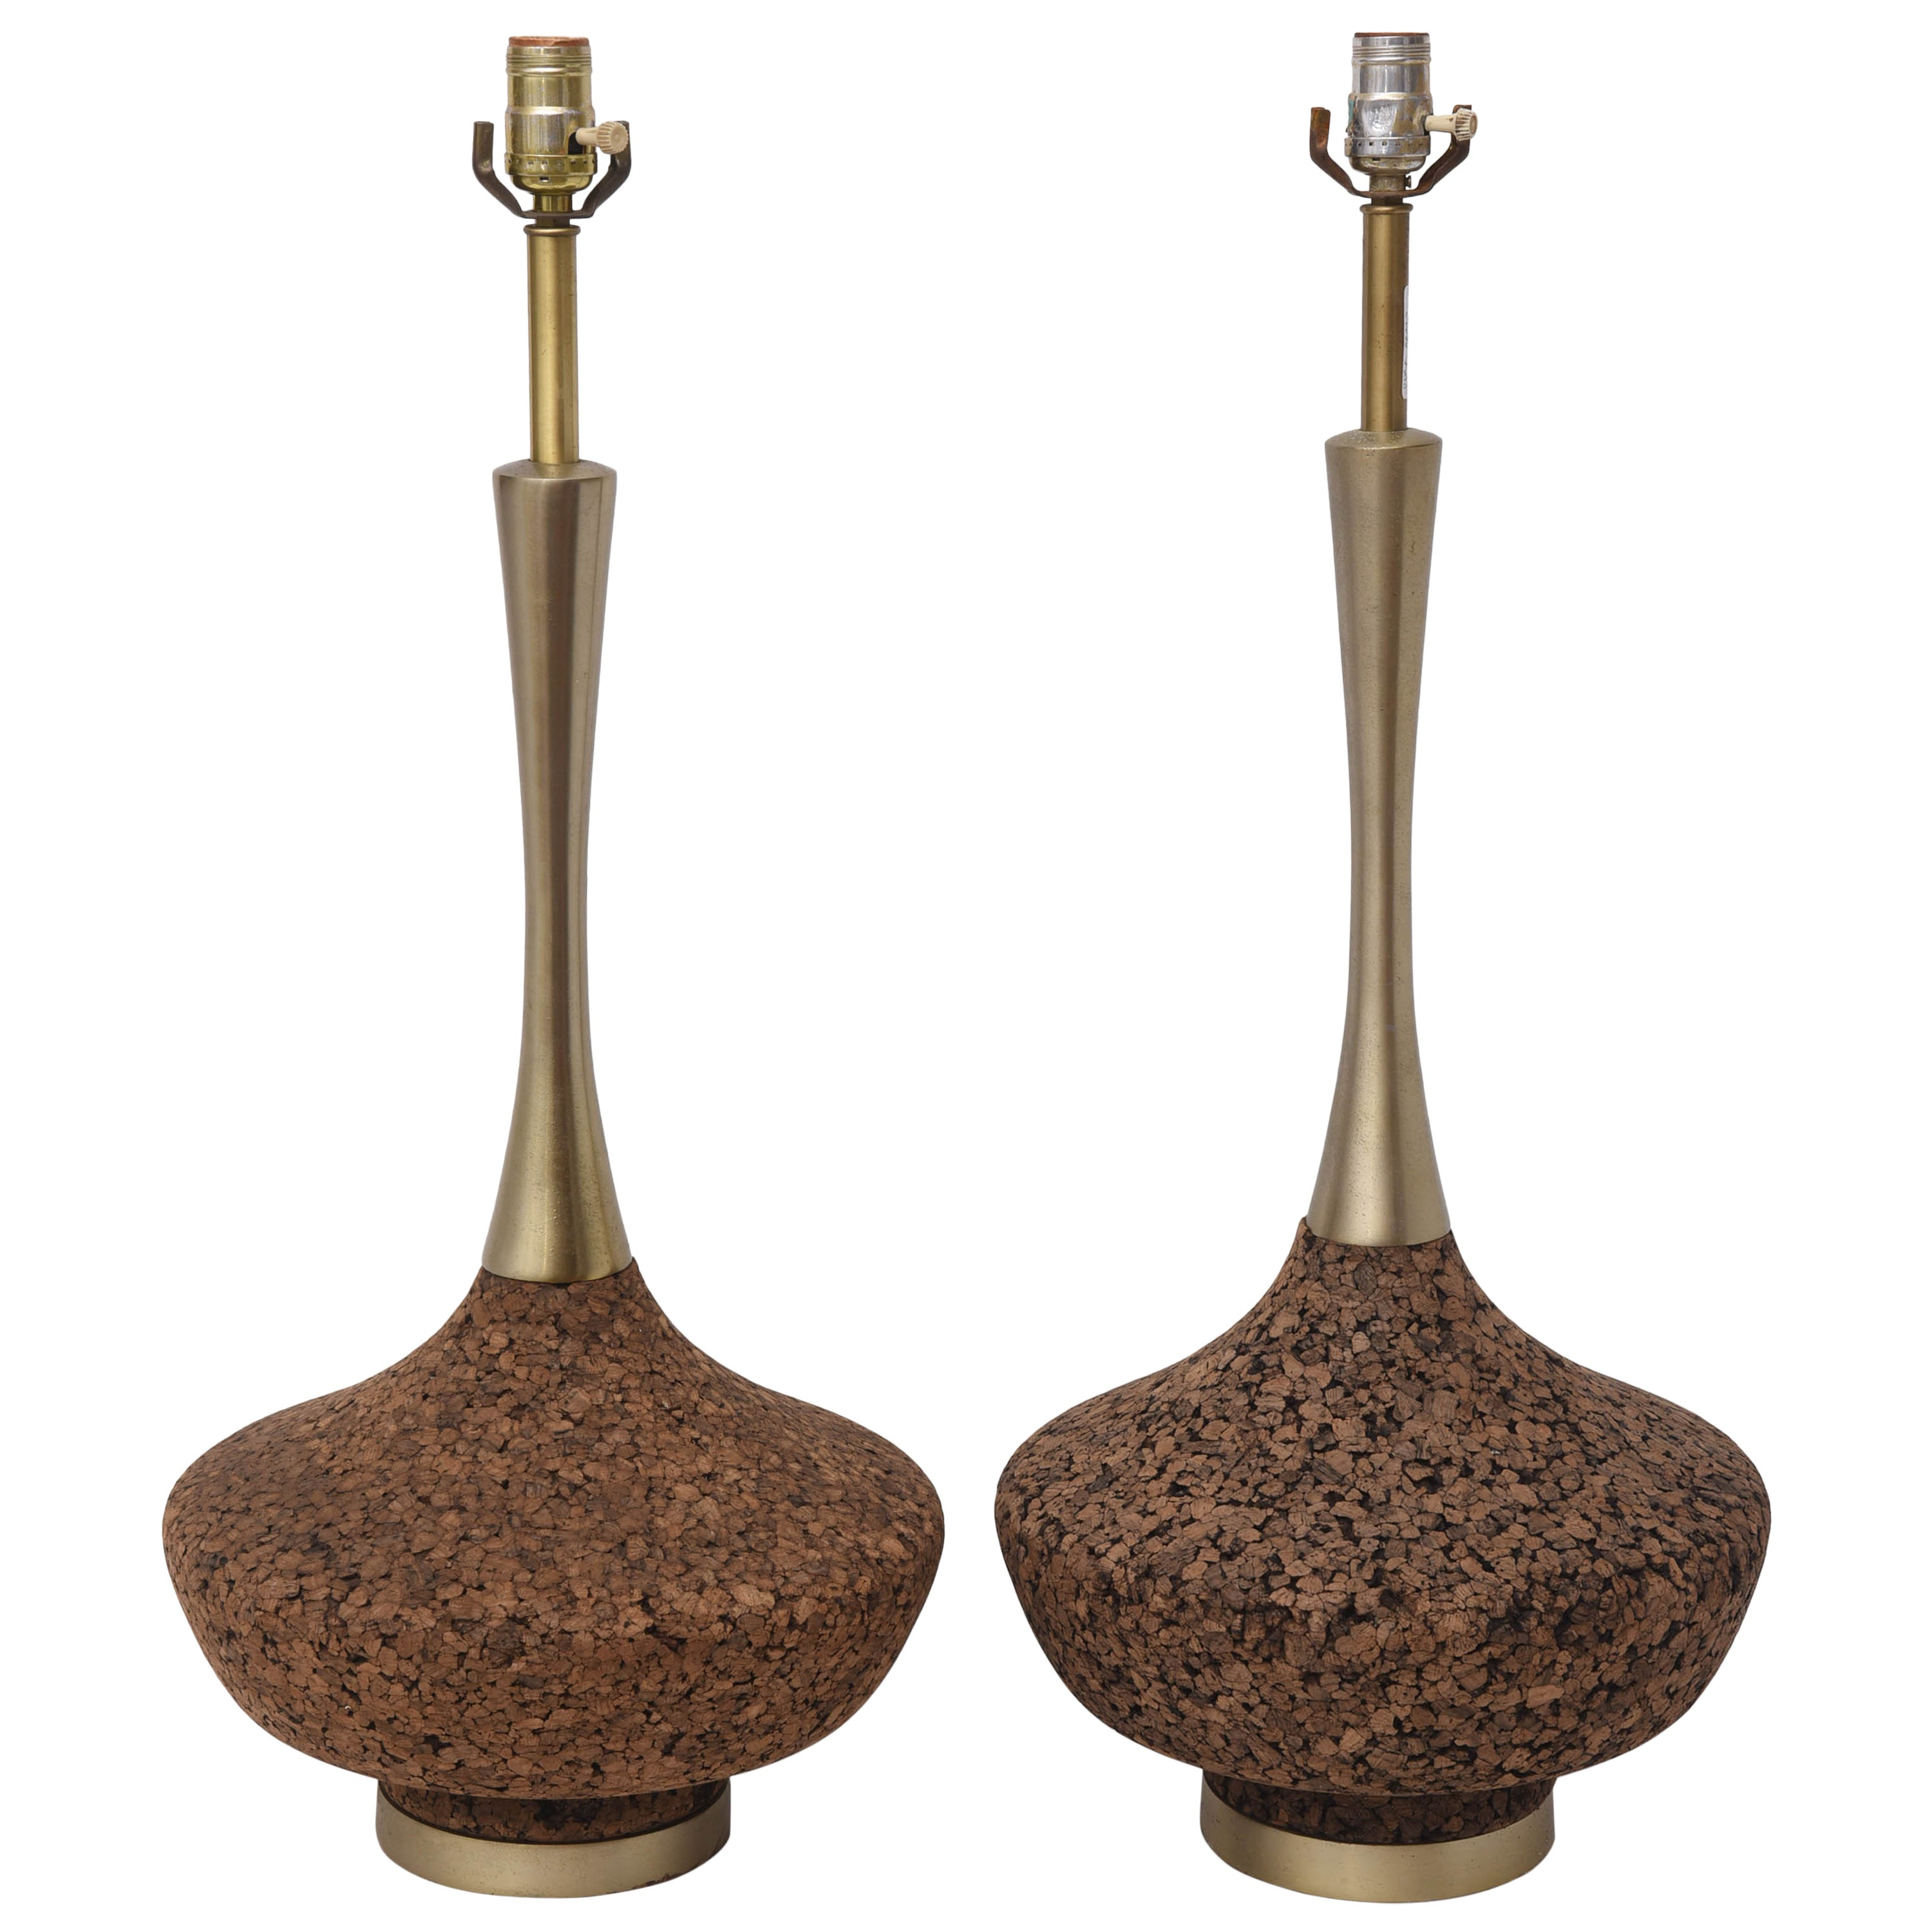 Monumental Brass and Cork Lamps--1970s USA